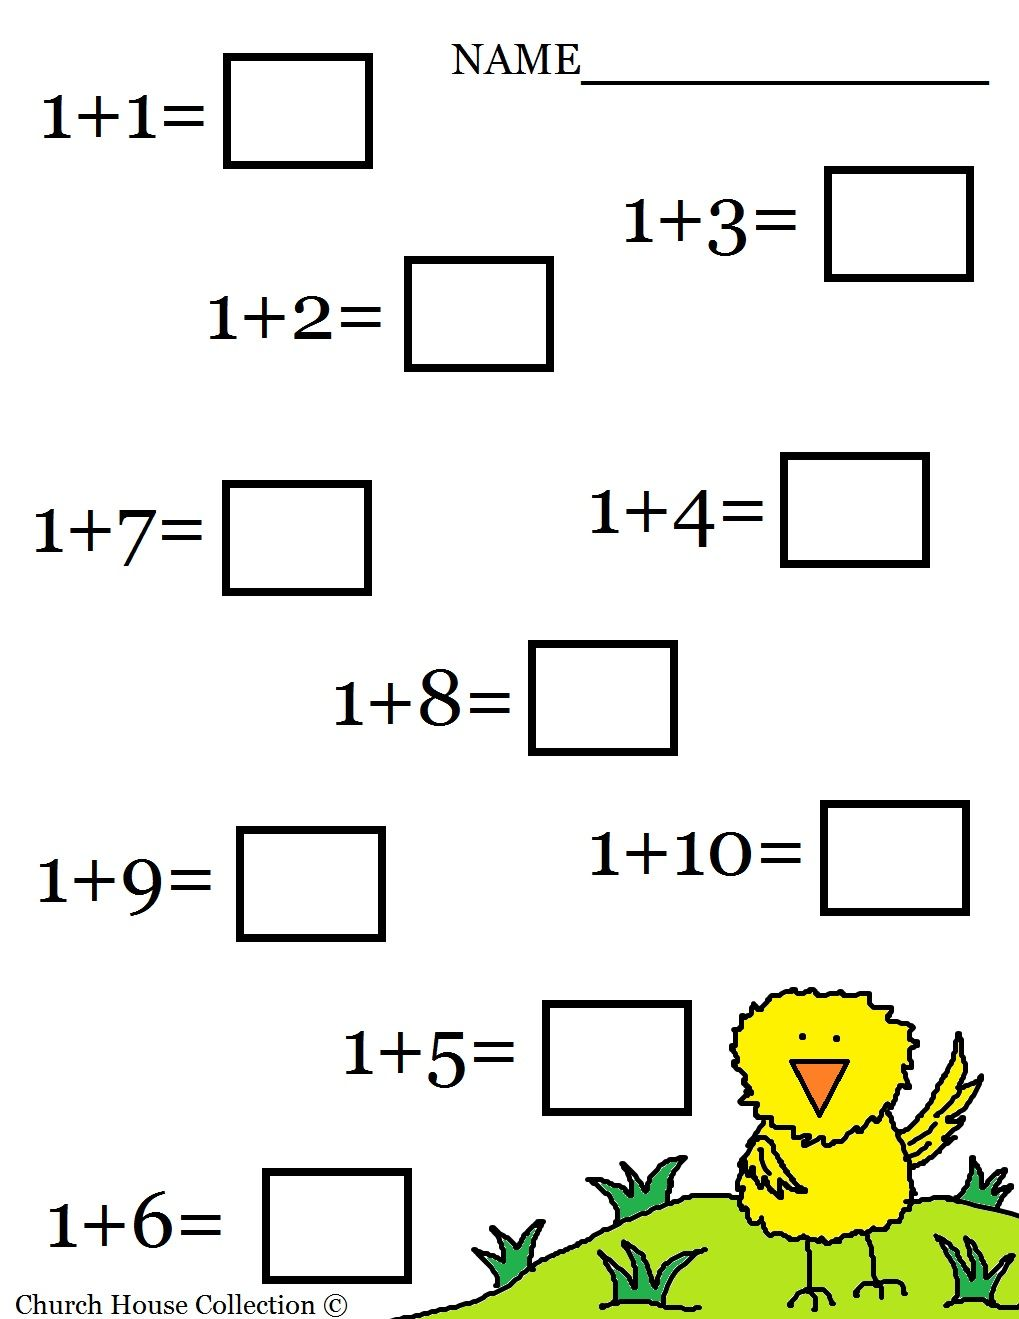 Aldiablosus  Splendid  Images About Worksheets  Math On Pinterest  Math Sheets  With Fascinating  Images About Worksheets  Math On Pinterest  Math Sheets Math Worksheets For Kindergarten And Simple Addition With Comely Ks Worksheets Also Jumbled Words Worksheets In Addition What Is A Fraction Worksheet And Spelling Plurals Worksheet As Well As Quiz Worksheets Additionally Addition Of Fraction Worksheets From Pinterestcom With Aldiablosus  Fascinating  Images About Worksheets  Math On Pinterest  Math Sheets  With Comely  Images About Worksheets  Math On Pinterest  Math Sheets Math Worksheets For Kindergarten And Simple Addition And Splendid Ks Worksheets Also Jumbled Words Worksheets In Addition What Is A Fraction Worksheet From Pinterestcom